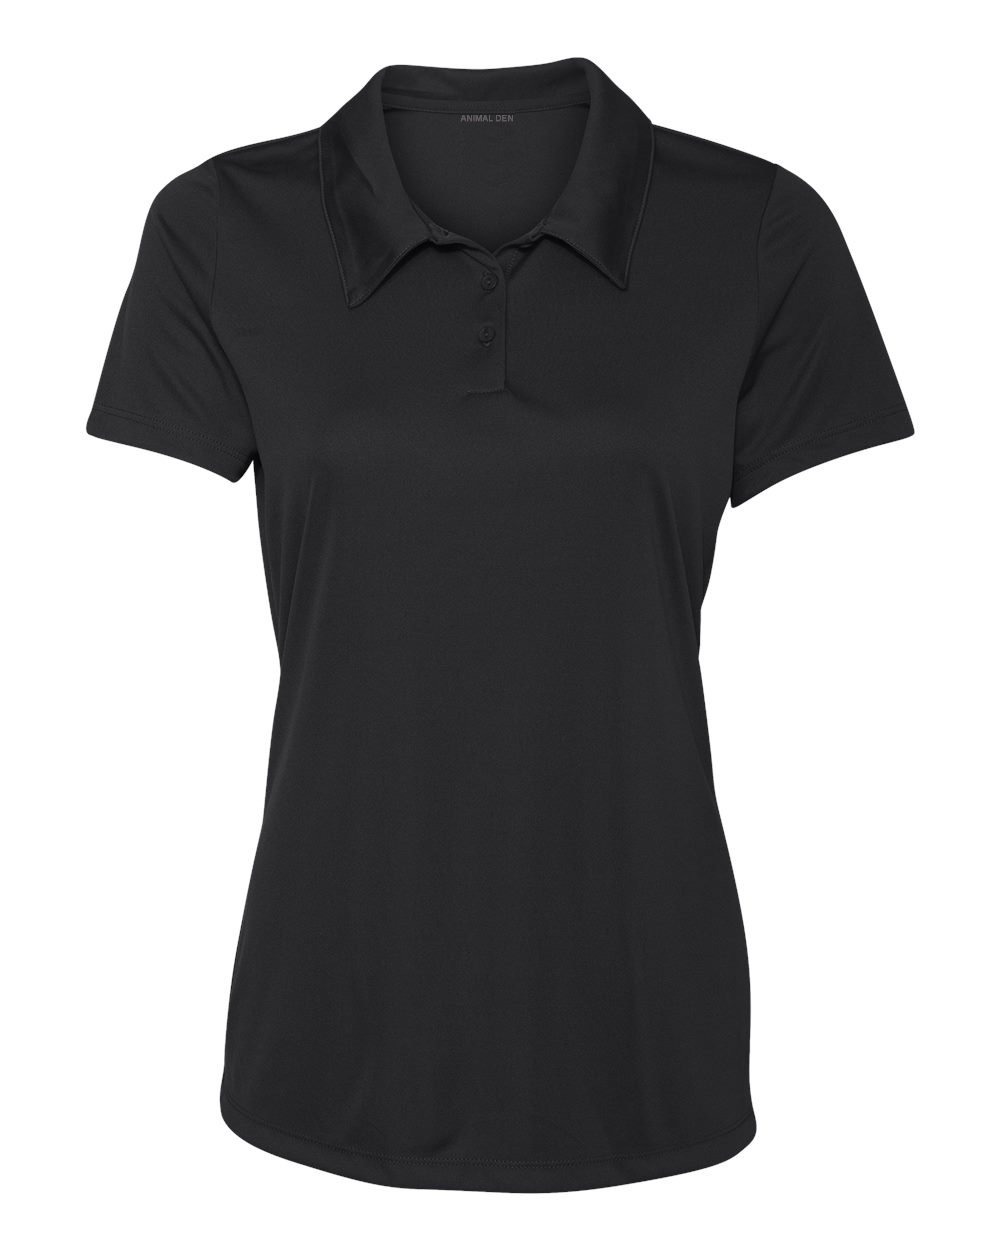 Women's Dry-Fit Golf Polo Shirts 3-Button Golf Polo's in 20 Colors XS-3XL Shirt Black-S by Animal Den